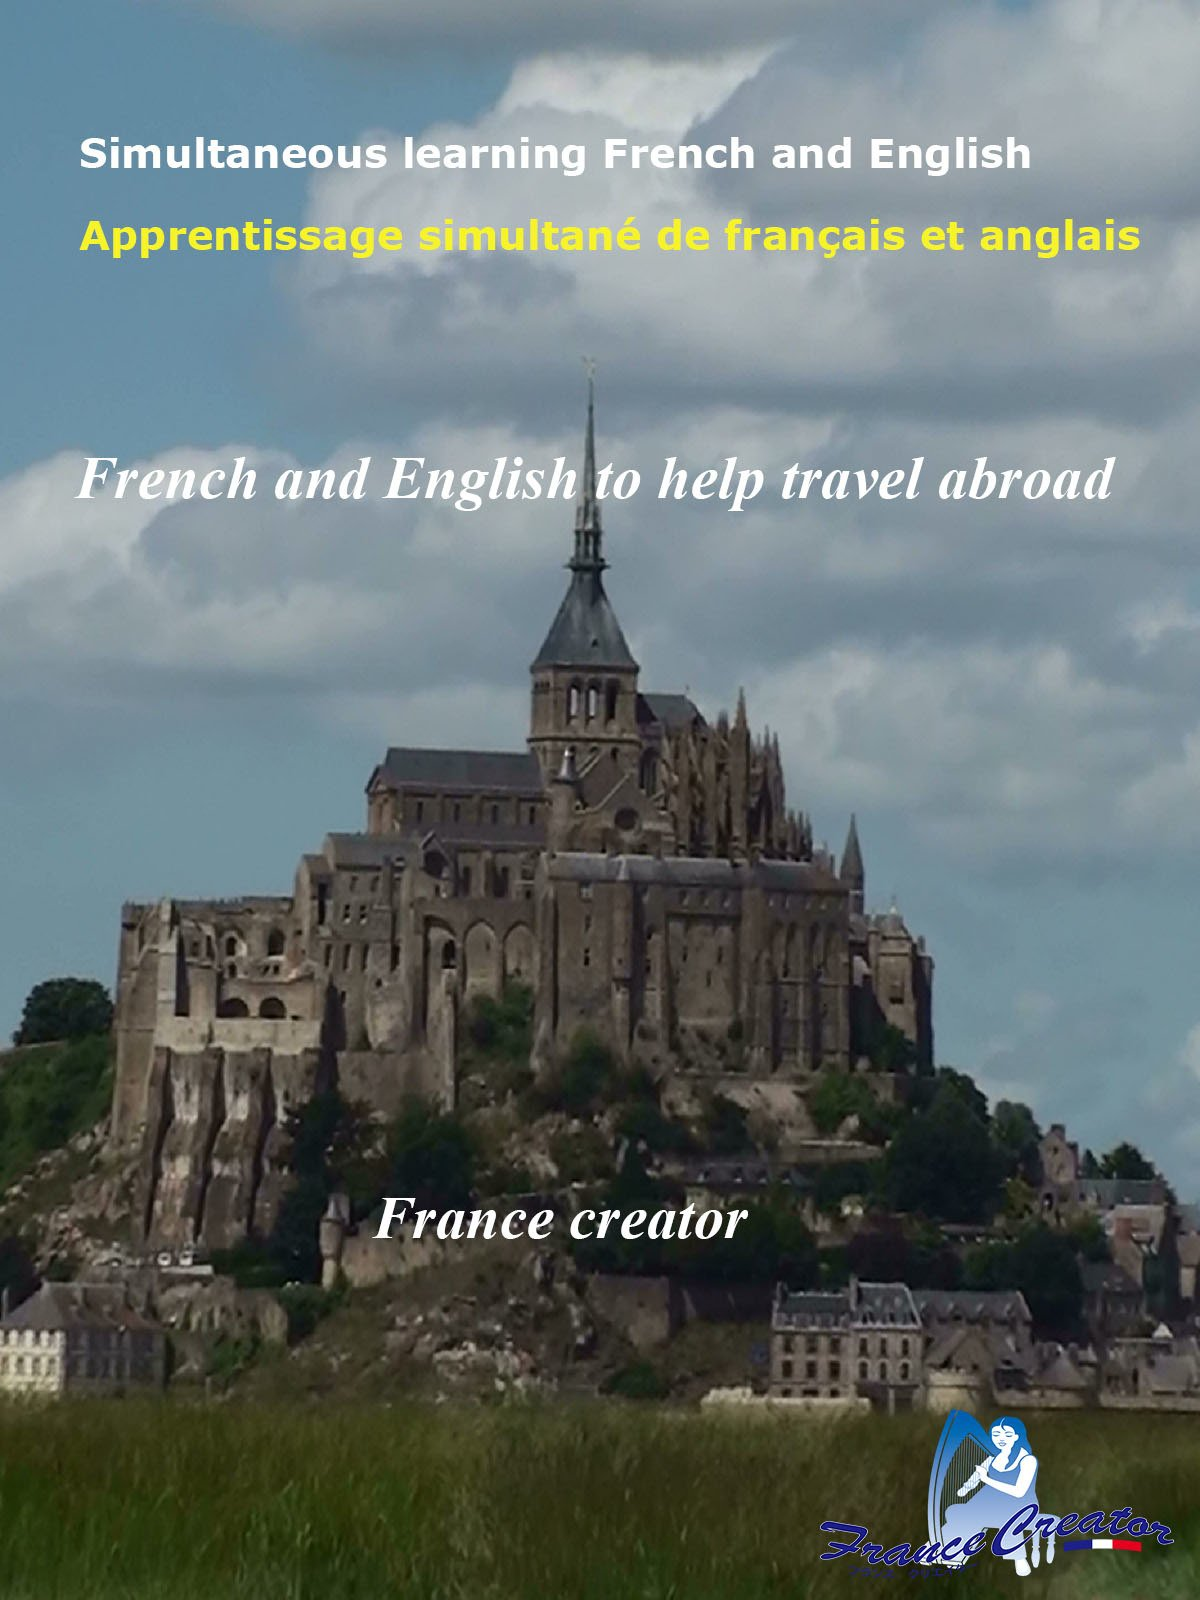 Simultaneous learning French and English French and English to help travel abroad